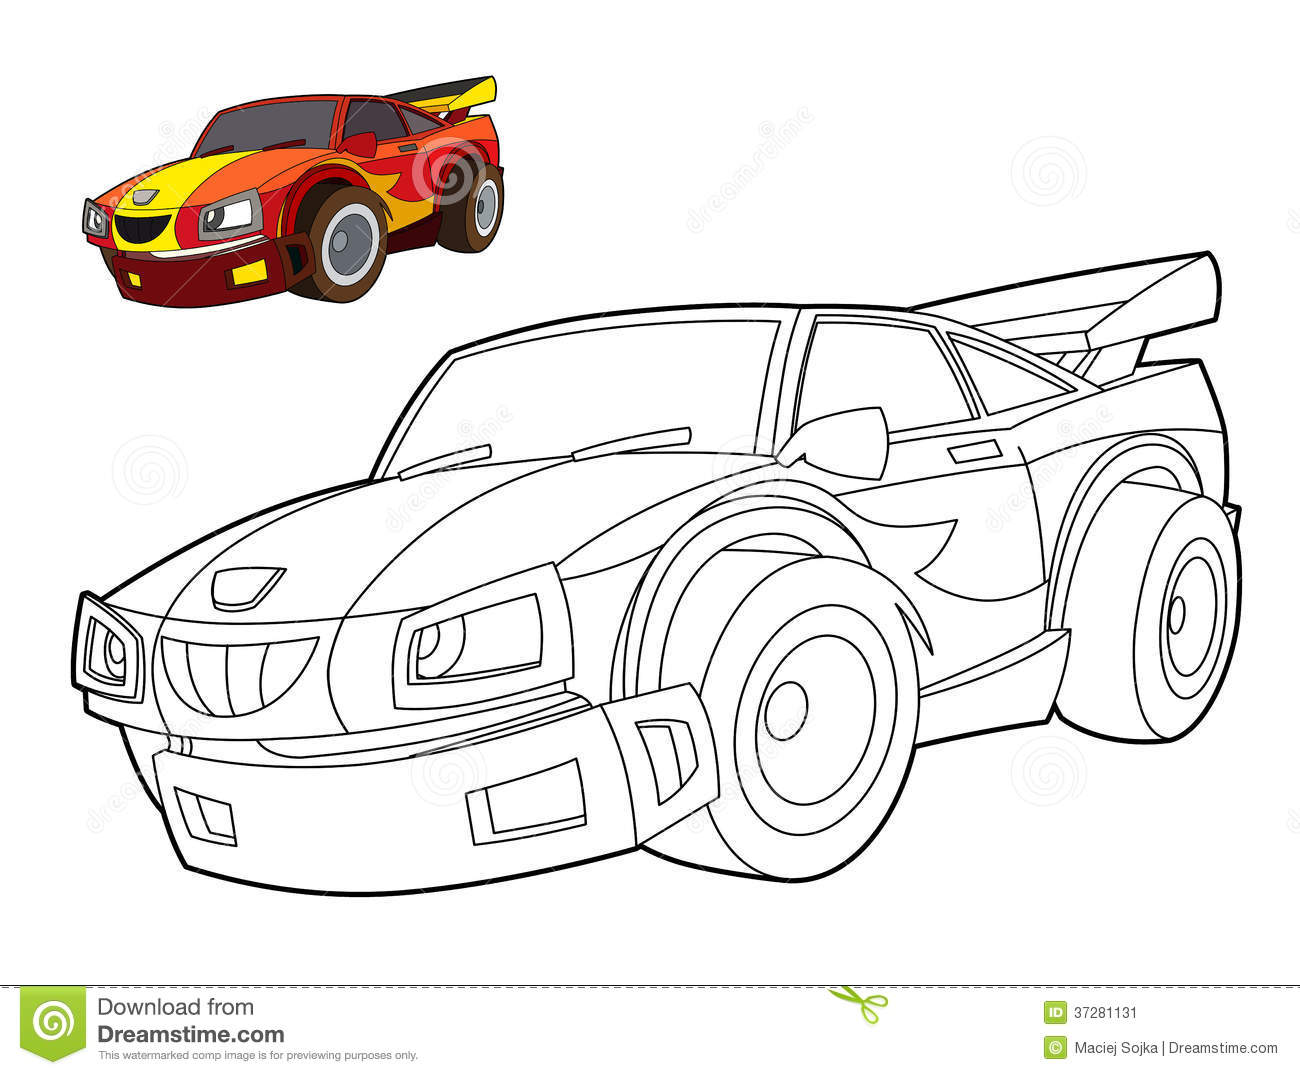 Stock Car Coloring Pages | www.imgkid.com - The Image Kid ...